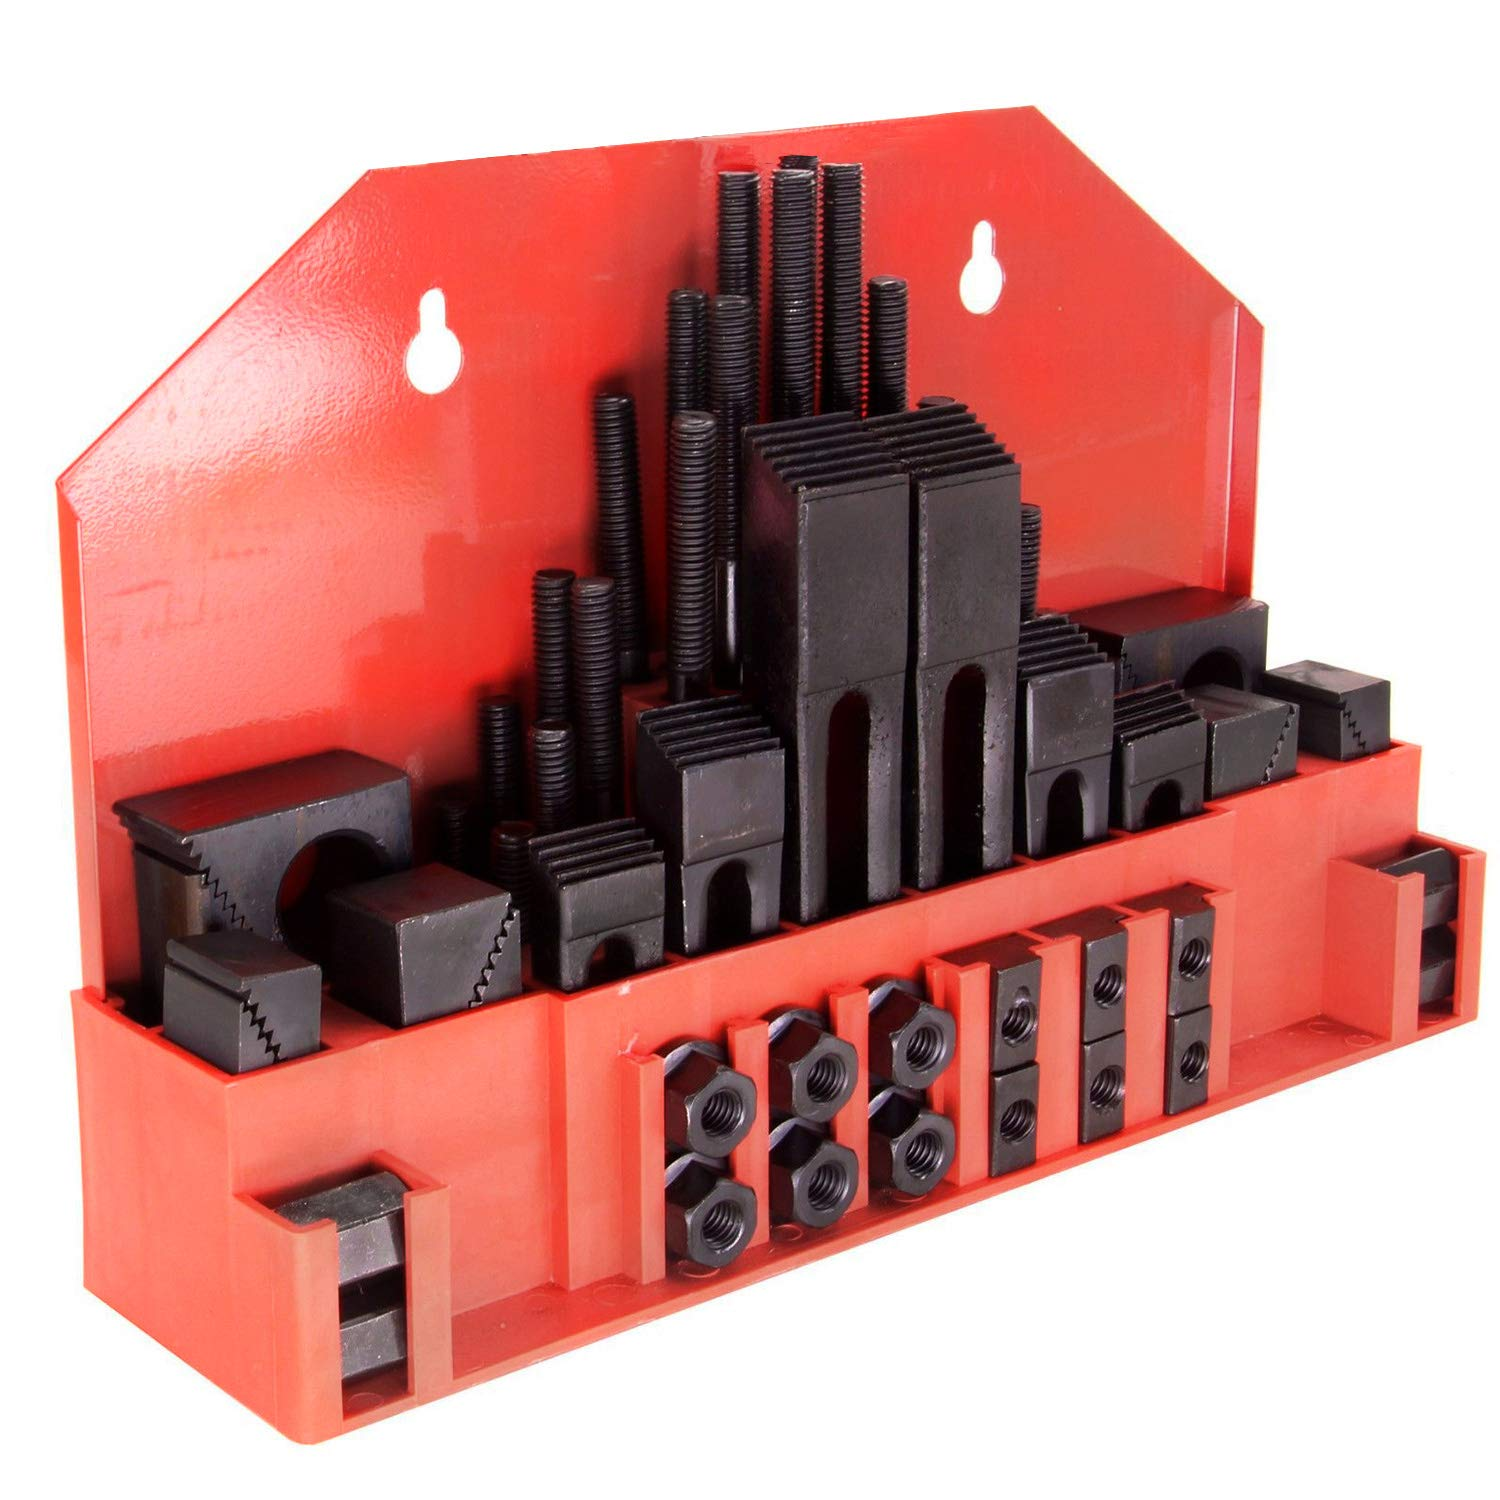 52 Pc ; 9//16 Slot ; 1//2-13 Stud Hold Down Clamp Clamping Set Kit for Bridgeport HFS Tm